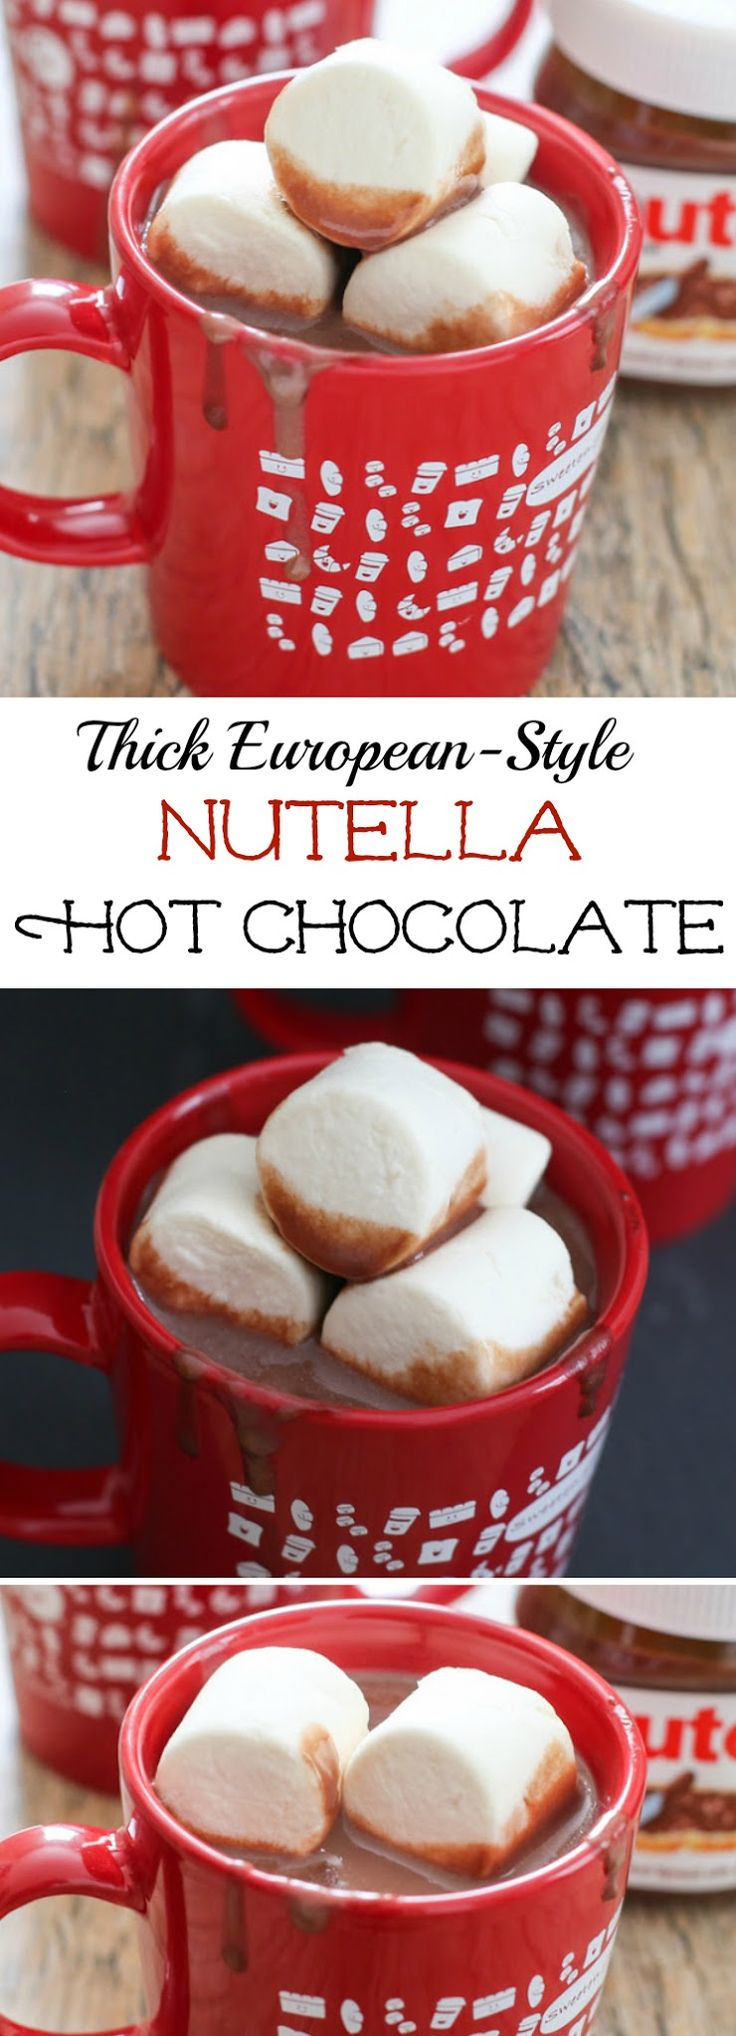 Thick European-Style Nutella Hot Chocolate